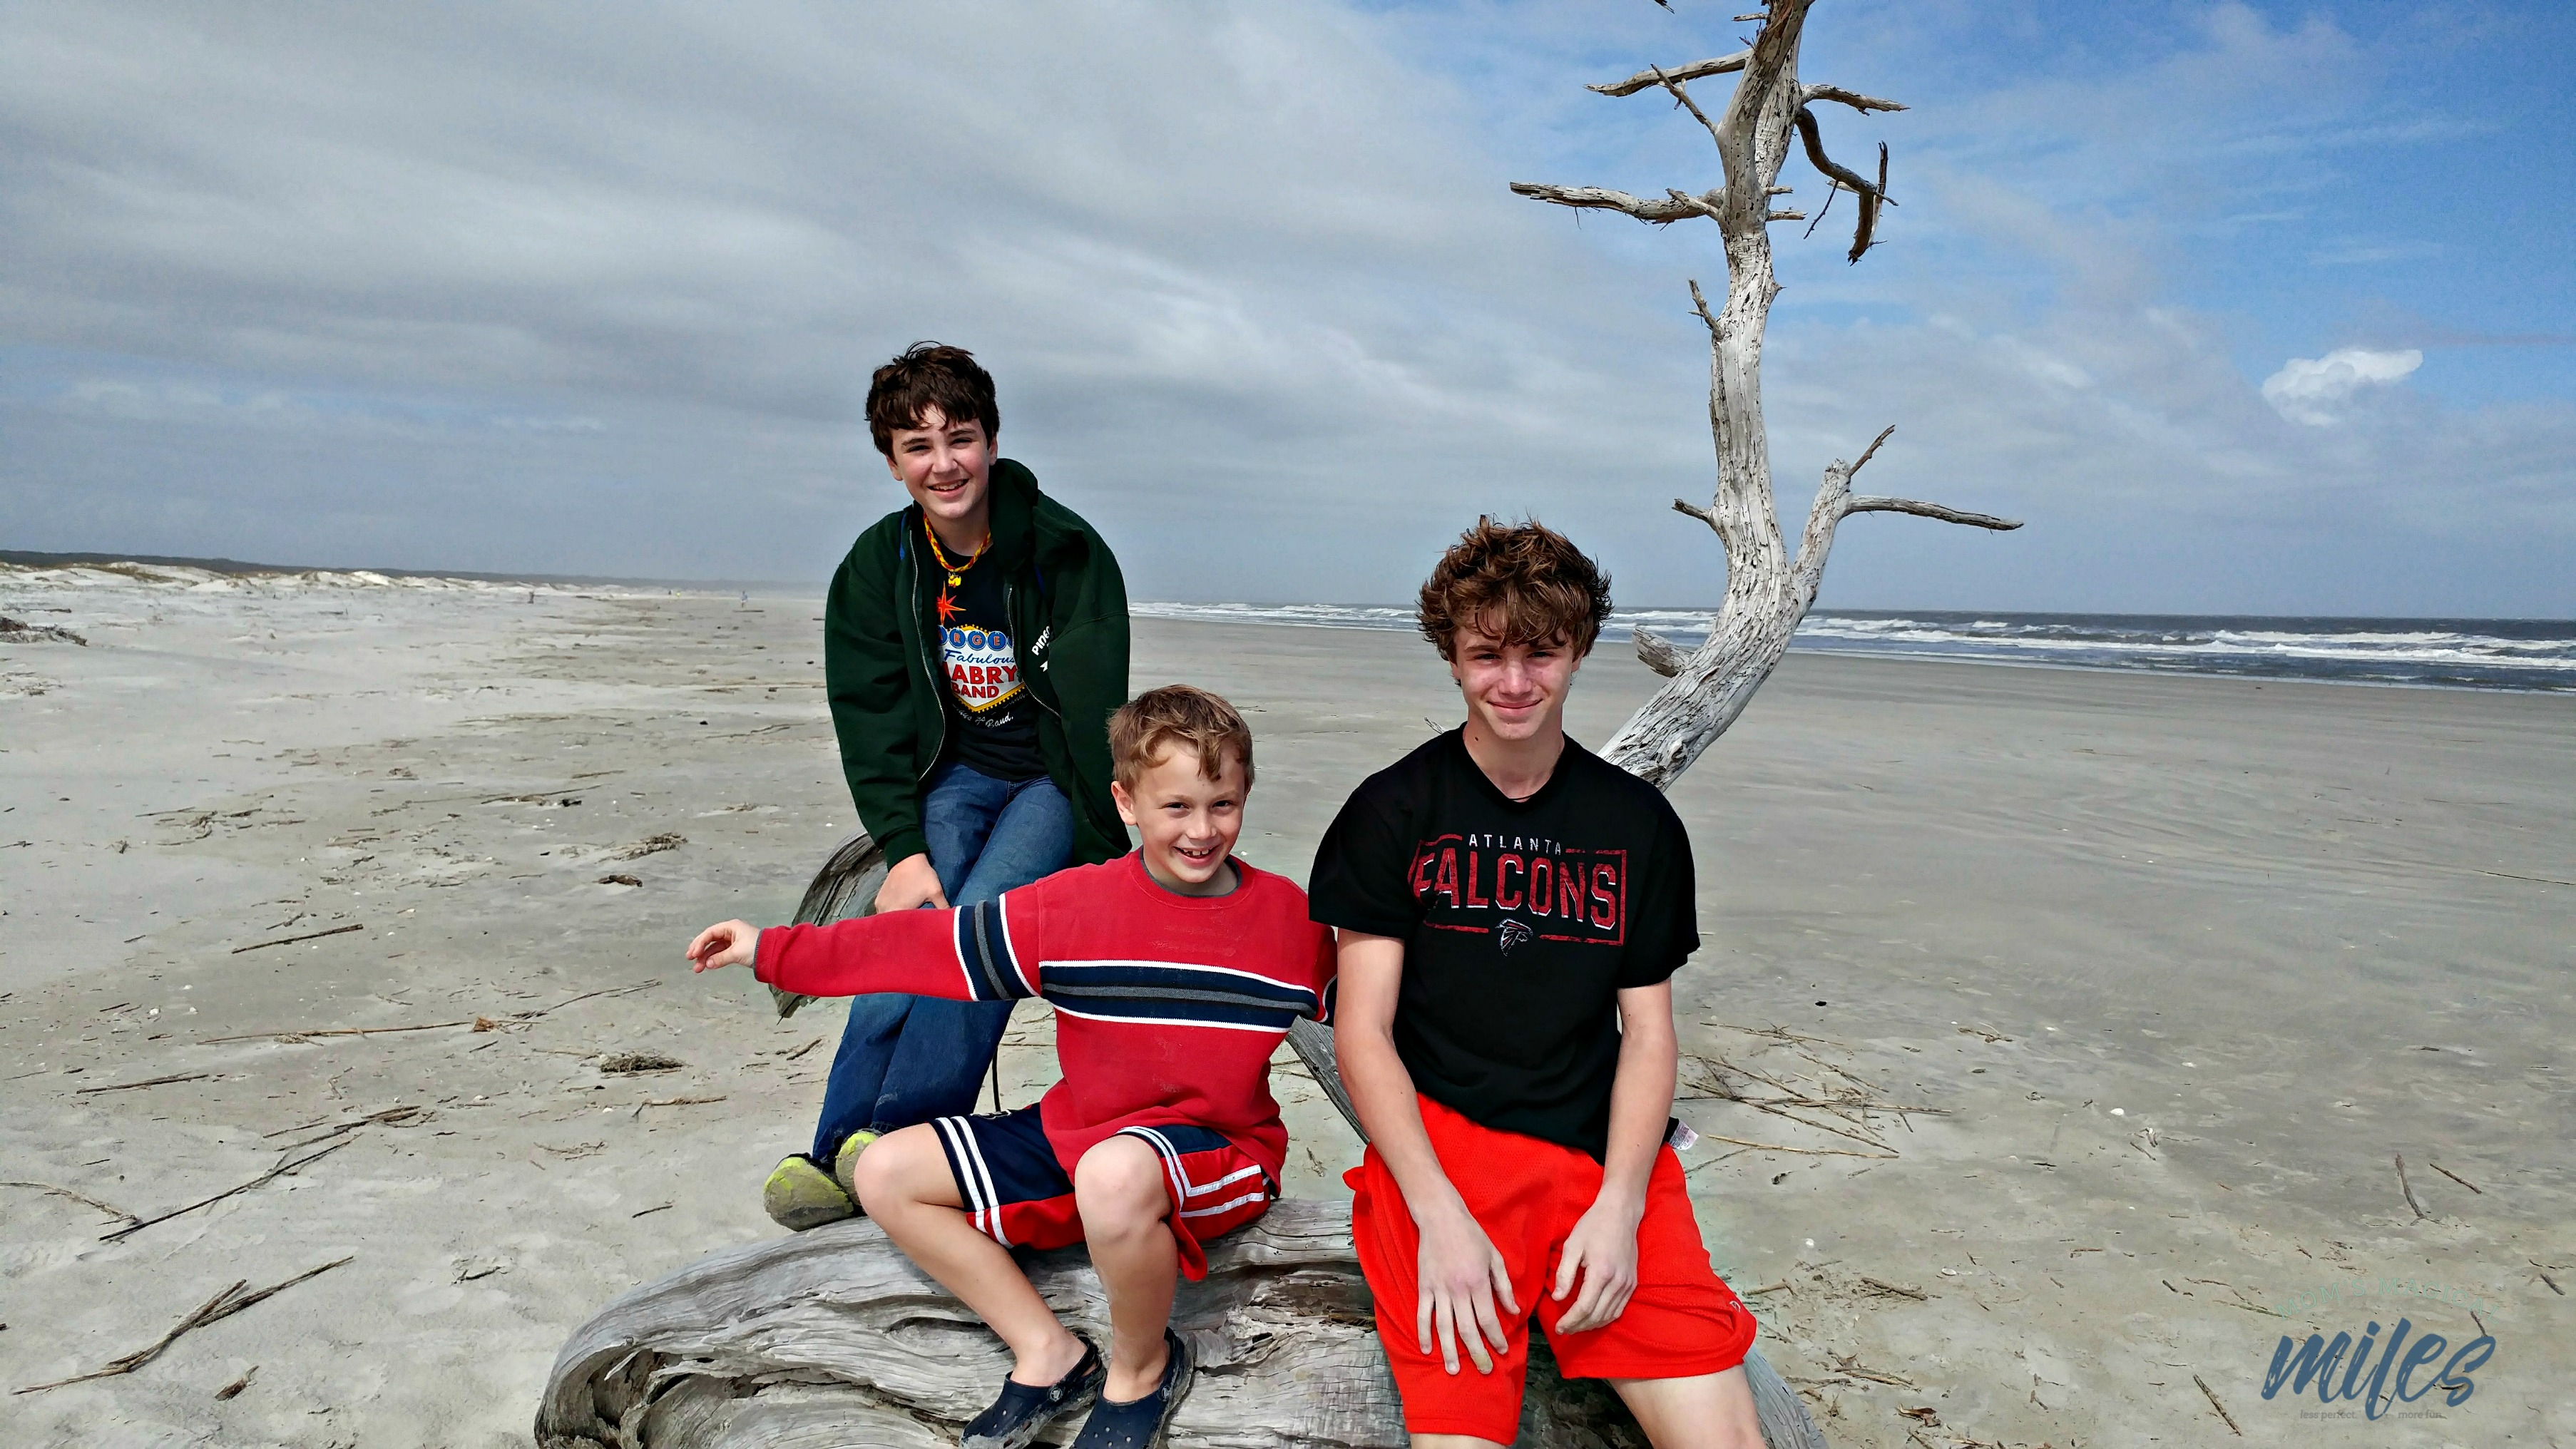 Cumberland Island on the Georgia coast boasts a pristine beach, perfect for being one with nature.